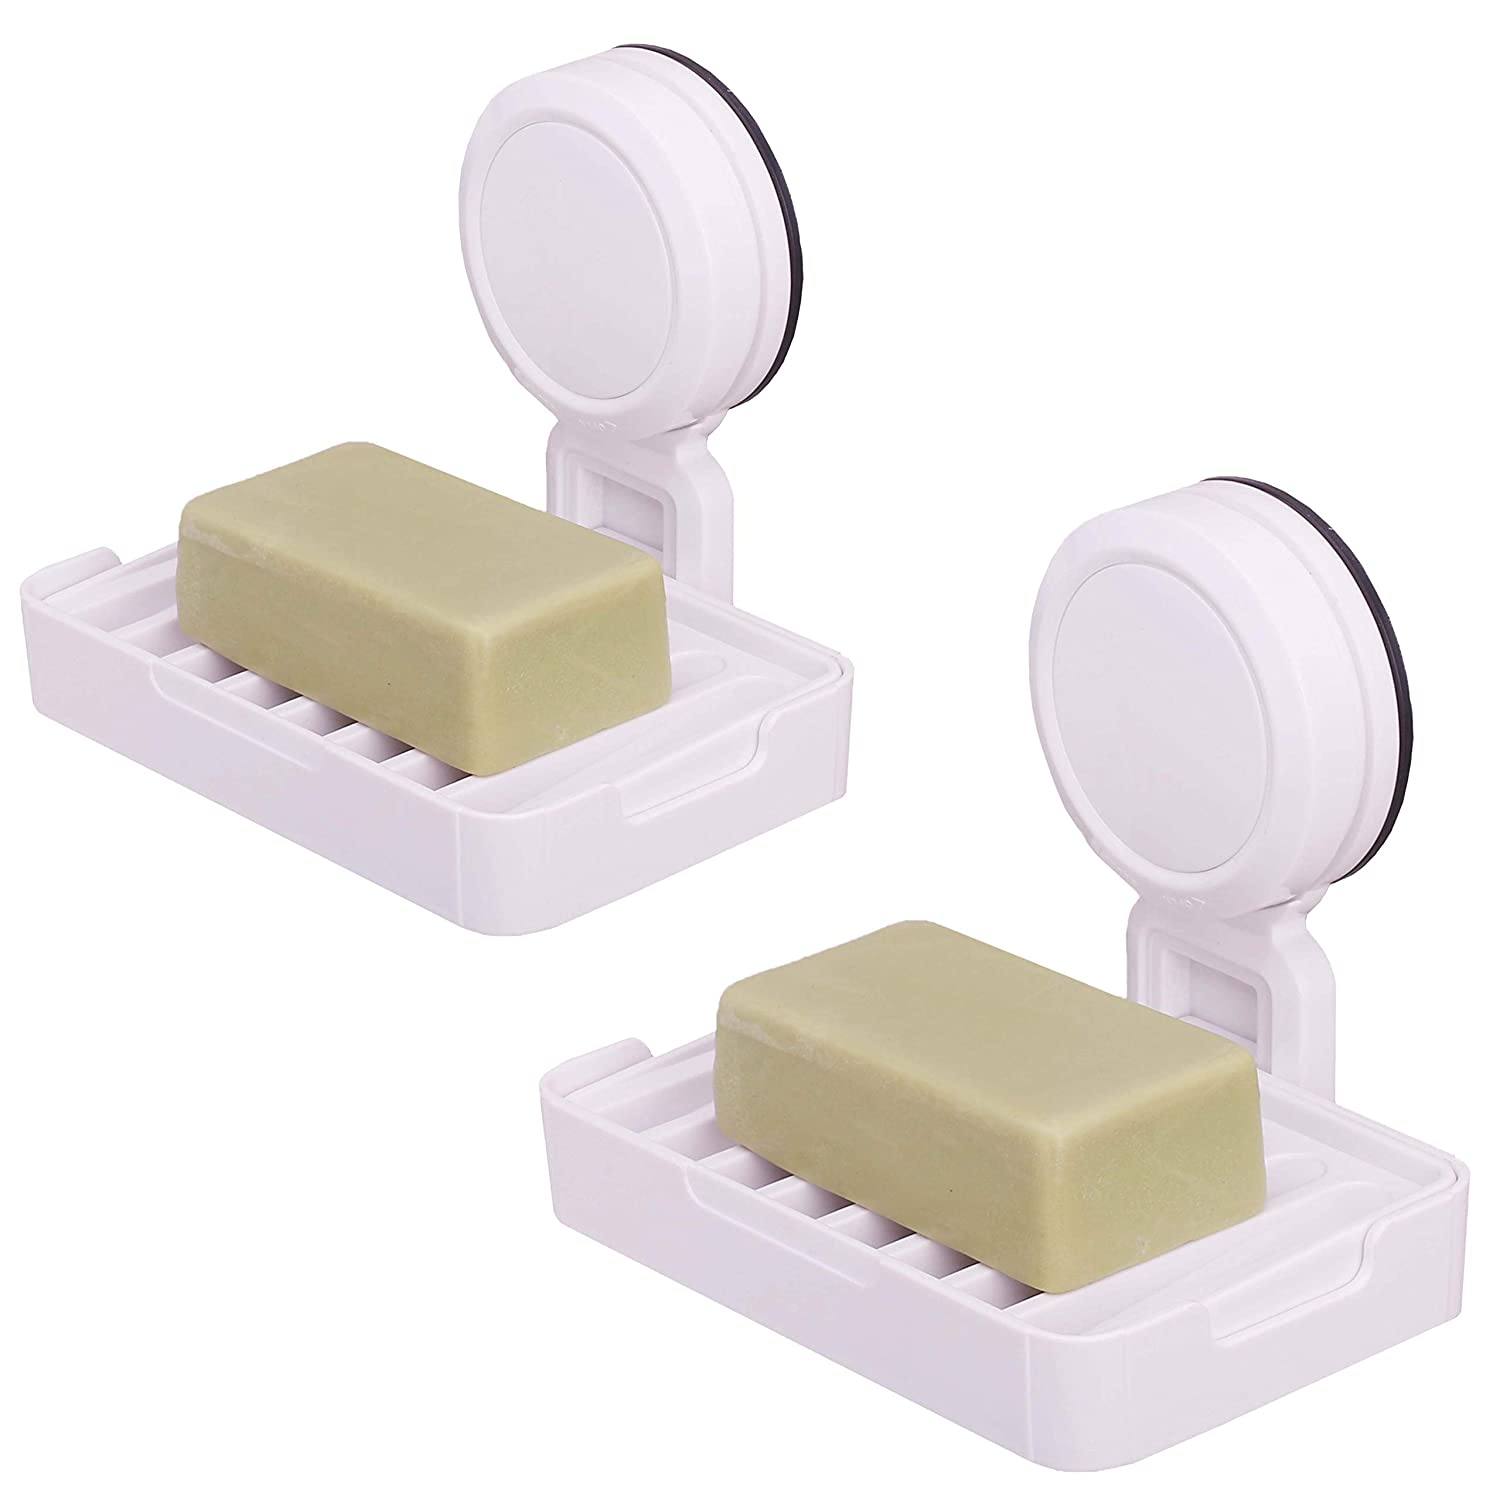 OKOMATCH Super Suction Cup Soap Dish Holder Wall Mounted ABS Plastic Double Layer Sponge Tray For Bathroom & Kitchen - Detachable,Rectangular,White(1pcs/pack)